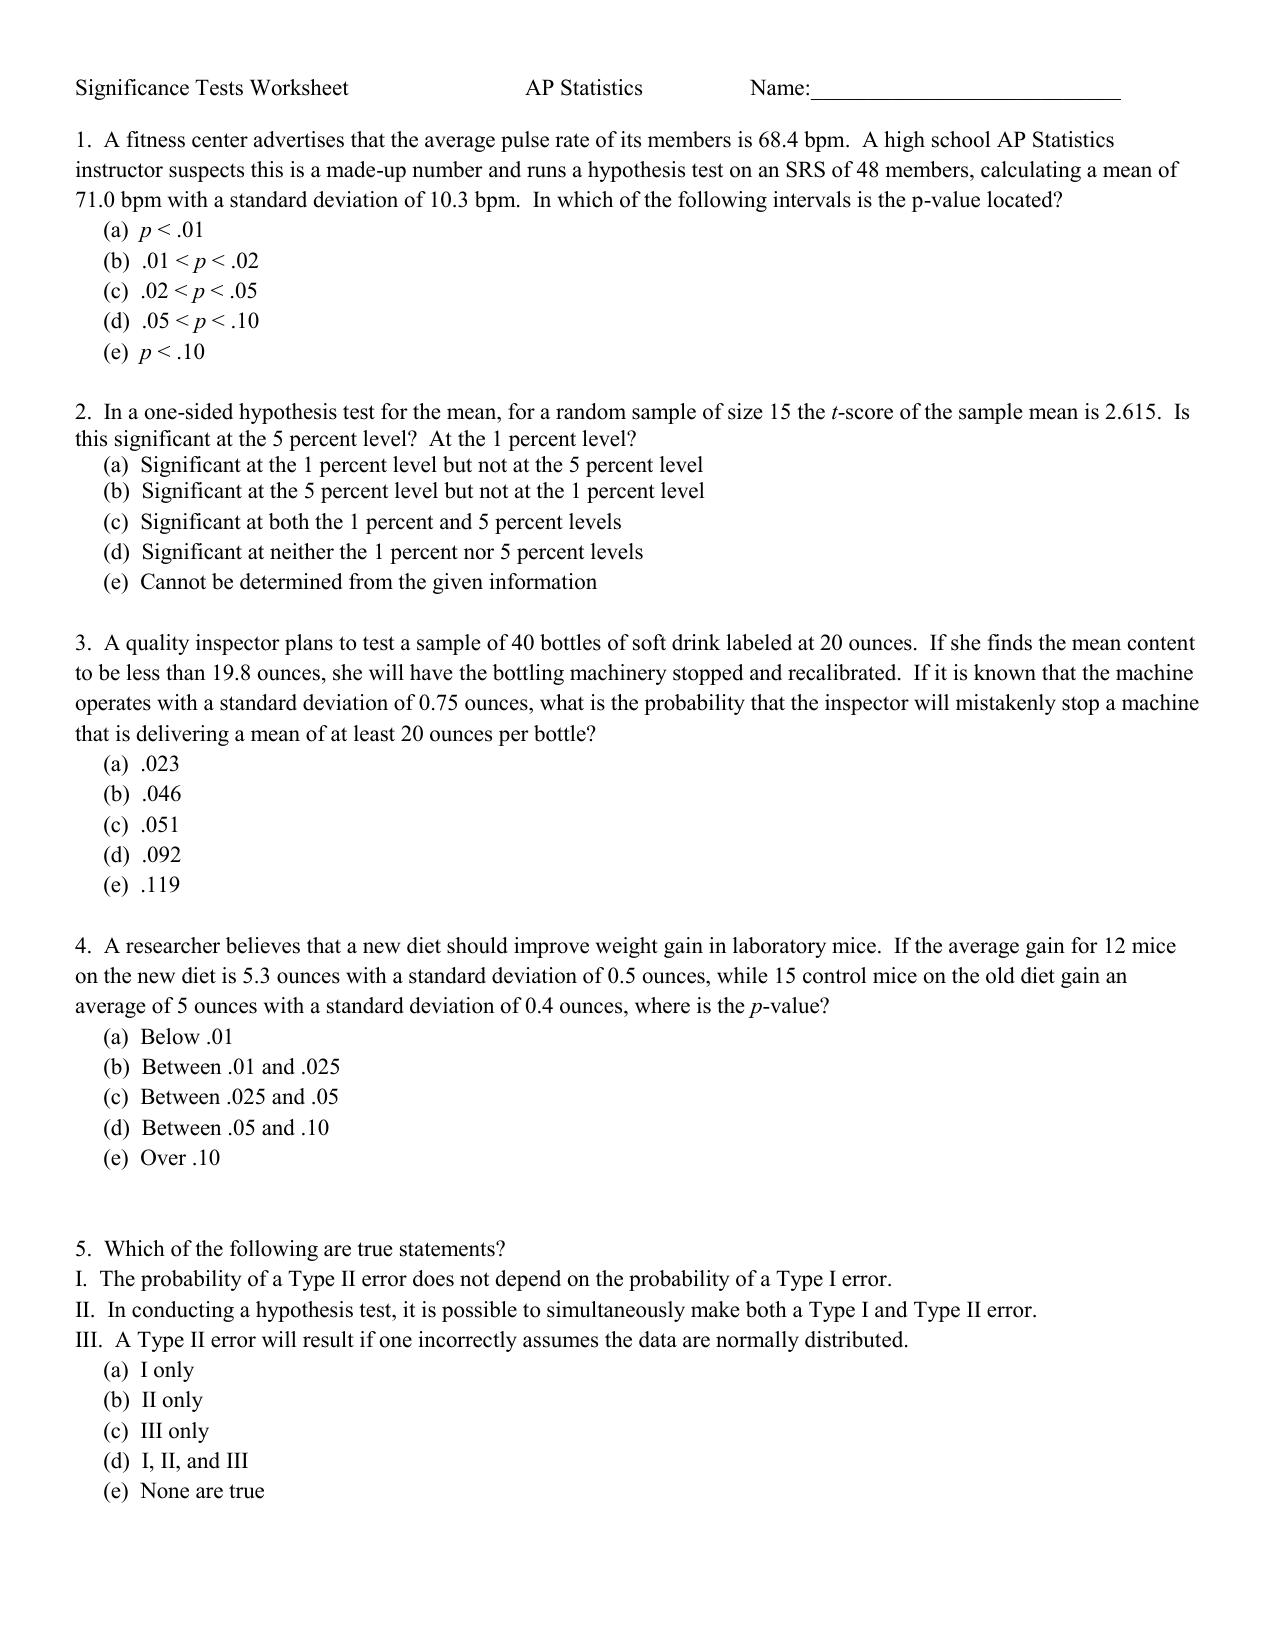 Significance Tests Worksheet Ap Statistics Name 1 A